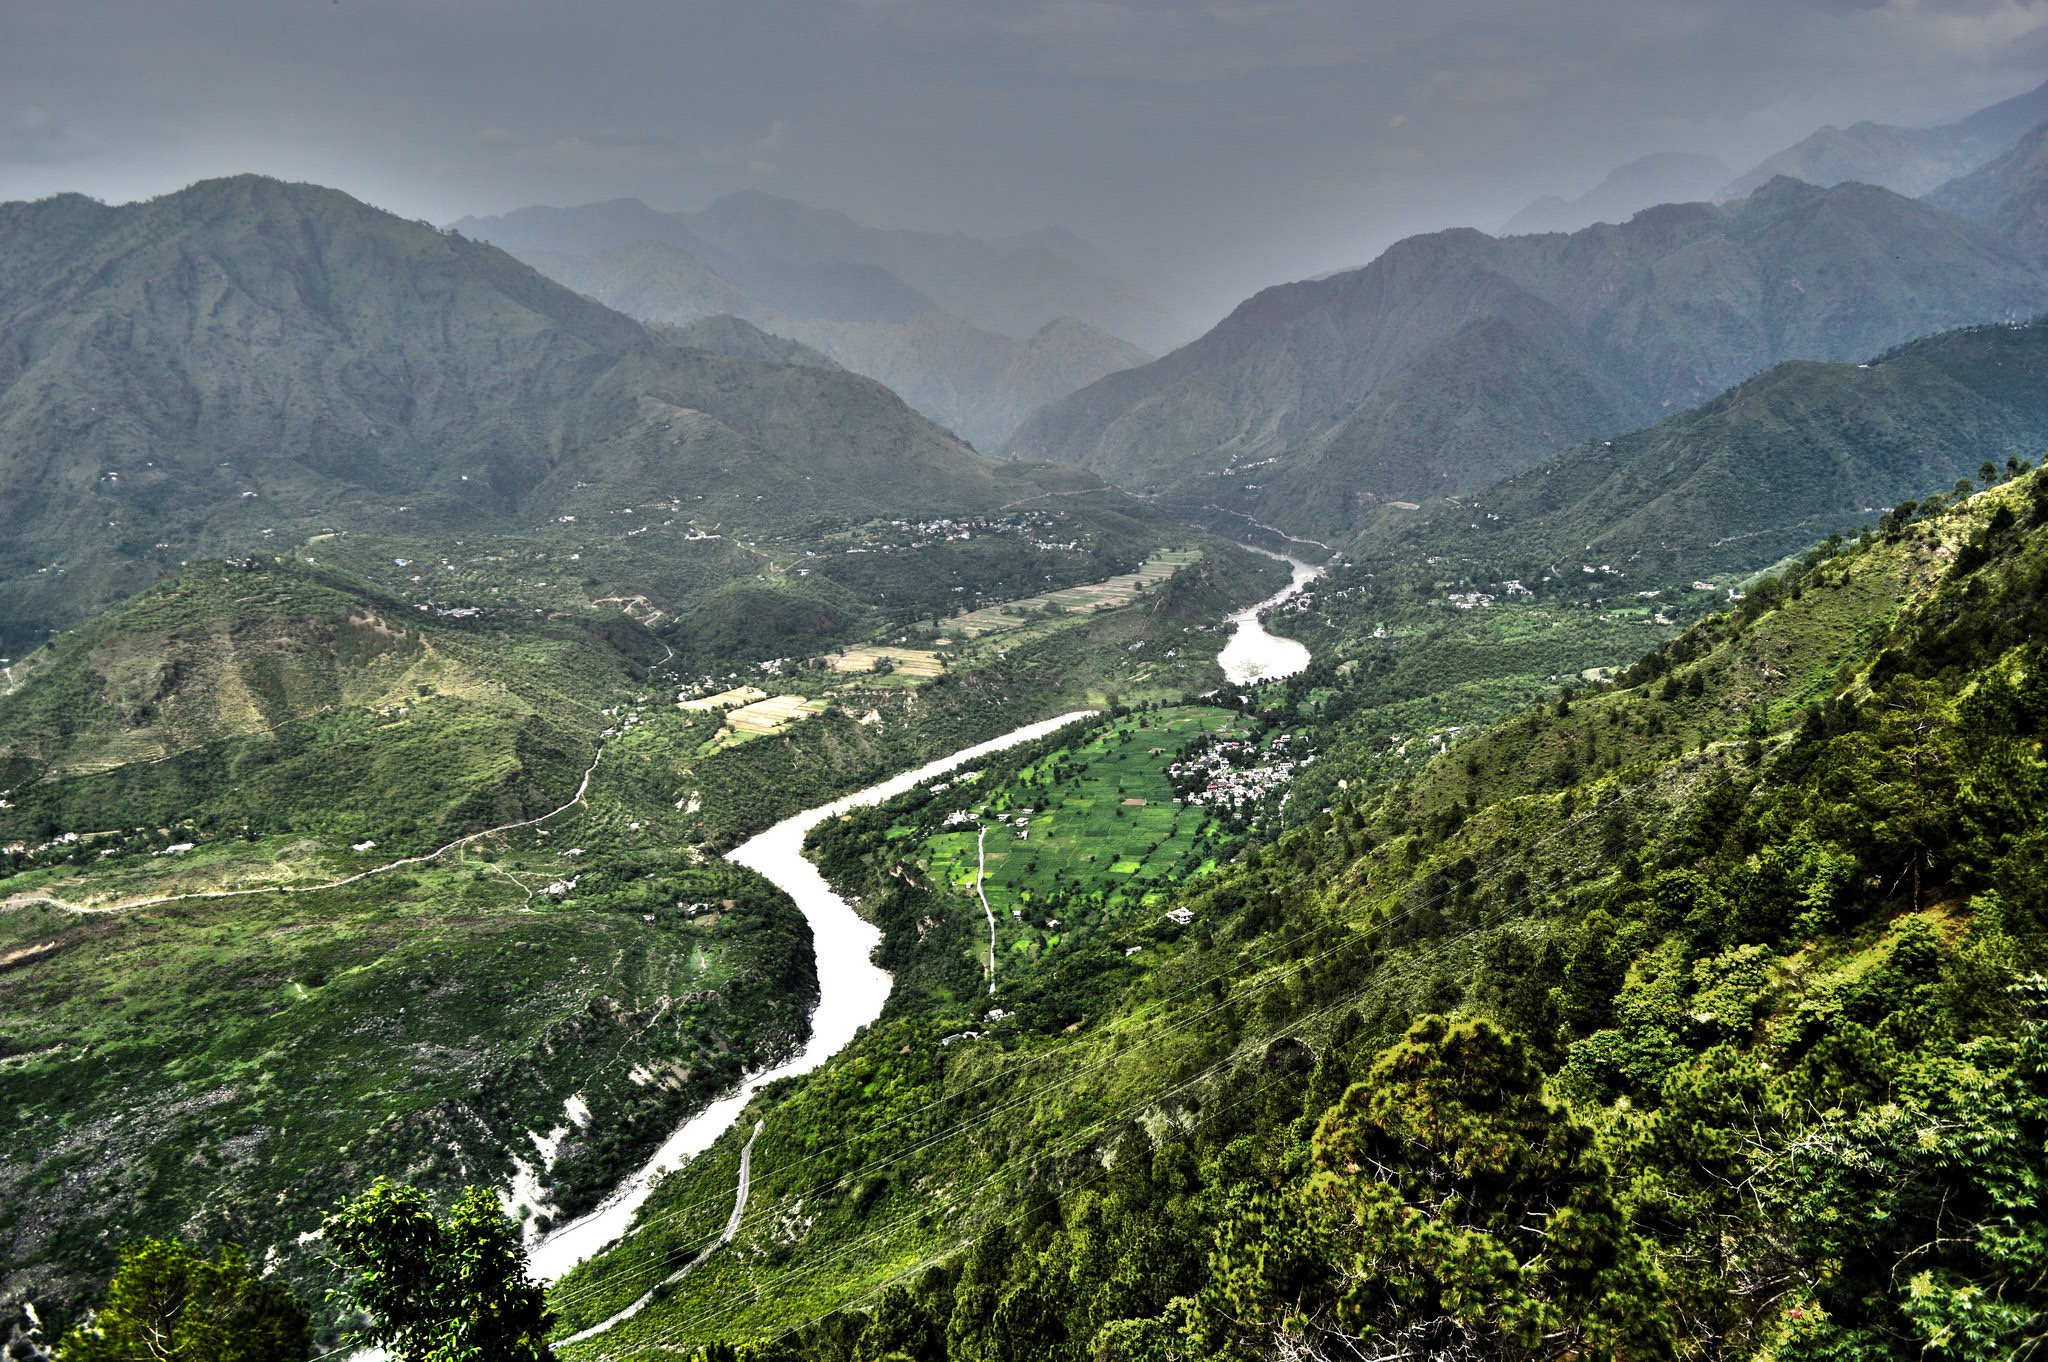 The Sutlej river winds its way through Shimla, Himachal Pradesh. Credit: darshansphotos/Flickr, CC BY 2.0